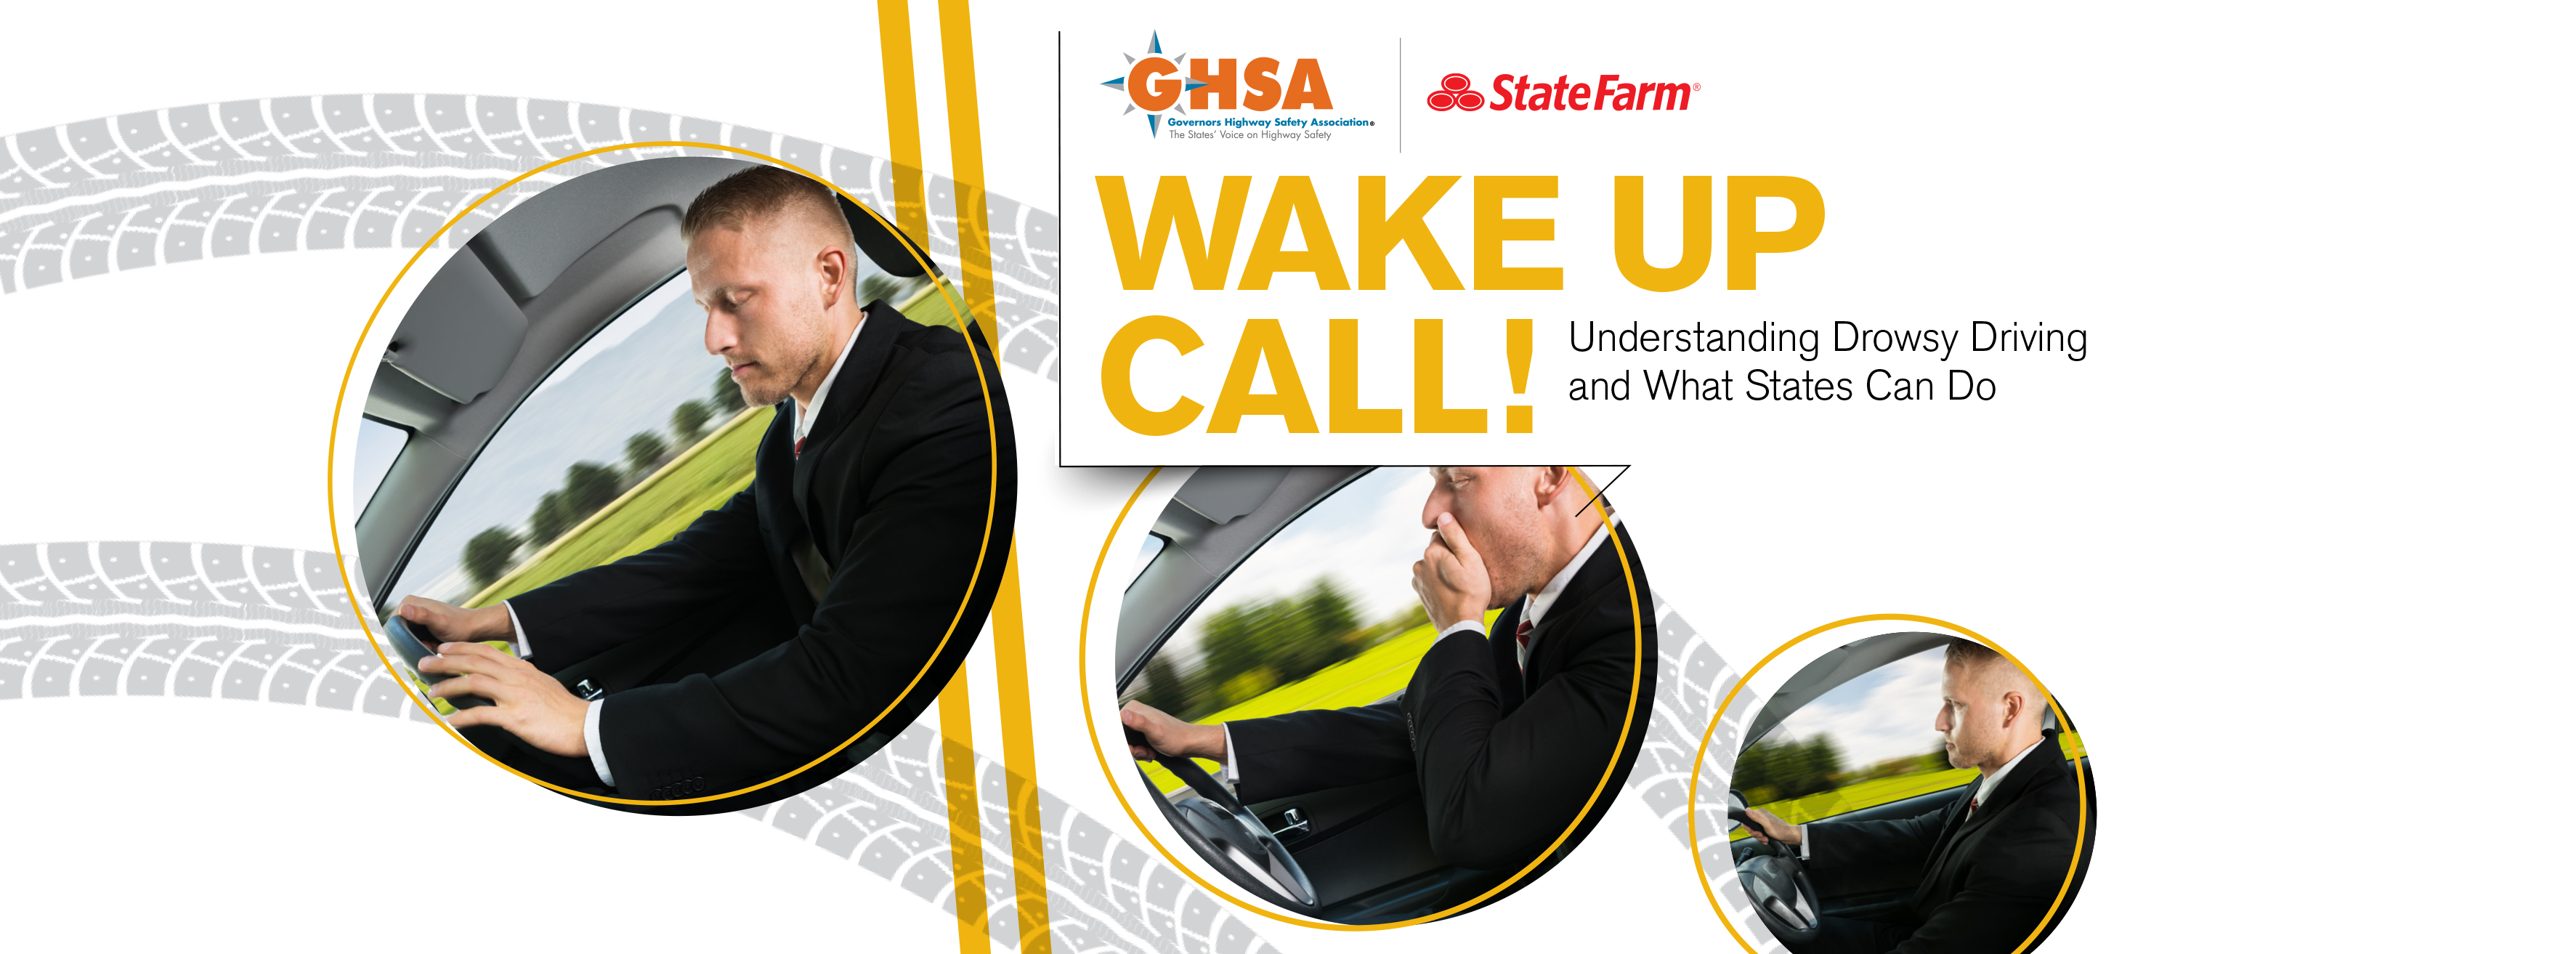 Wake Up Call! Understanding Drowsy Driving and What States Can Do